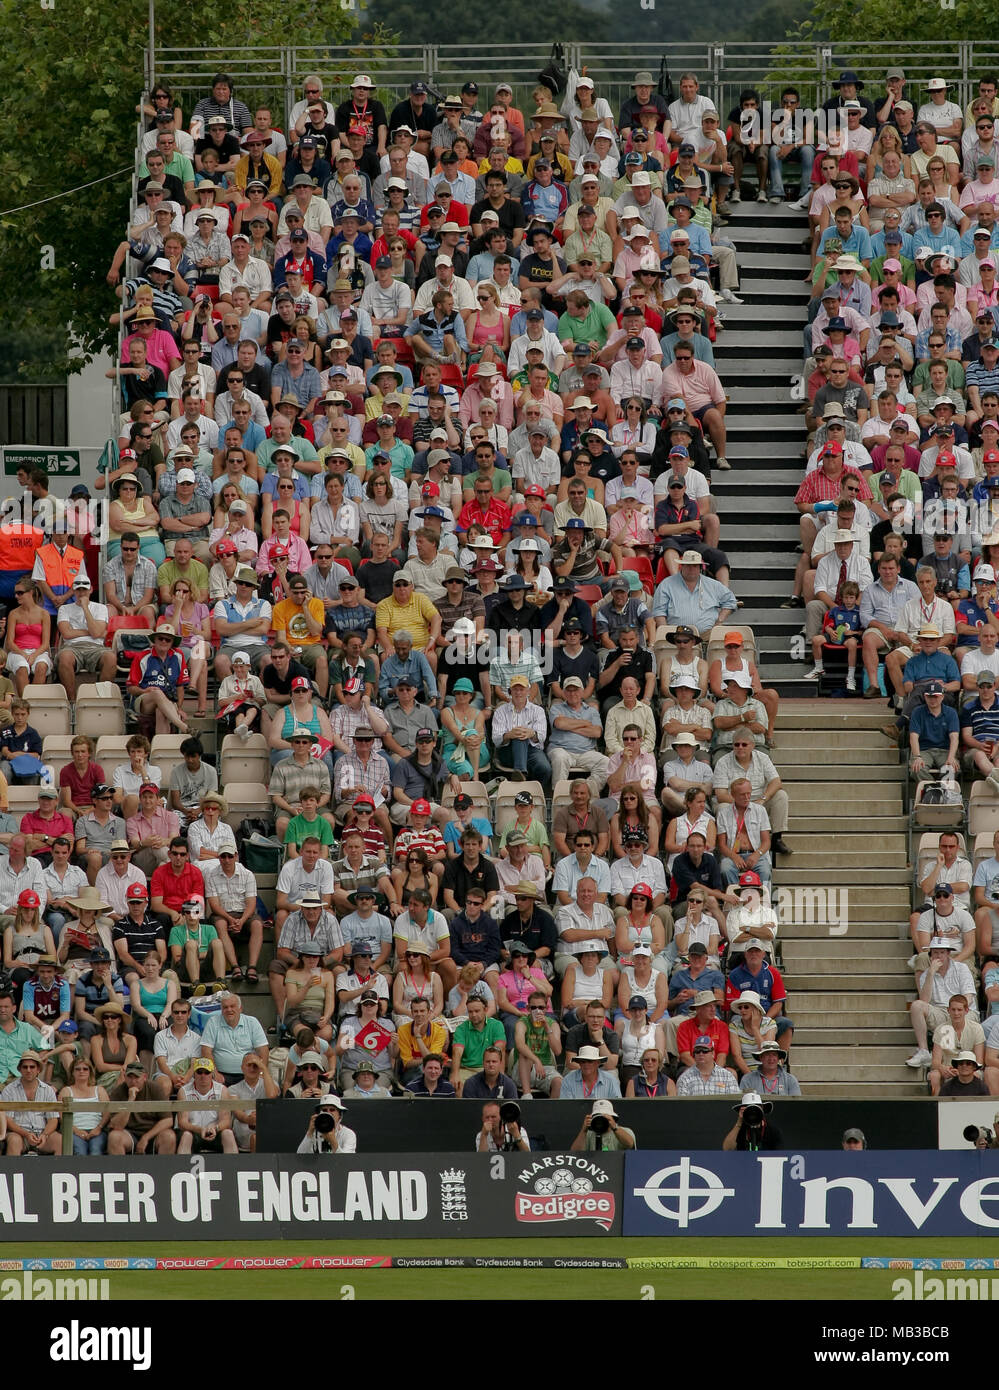 Blocks of fans at a twenty20 cricket match suitable for backgrounds use. - Stock Image